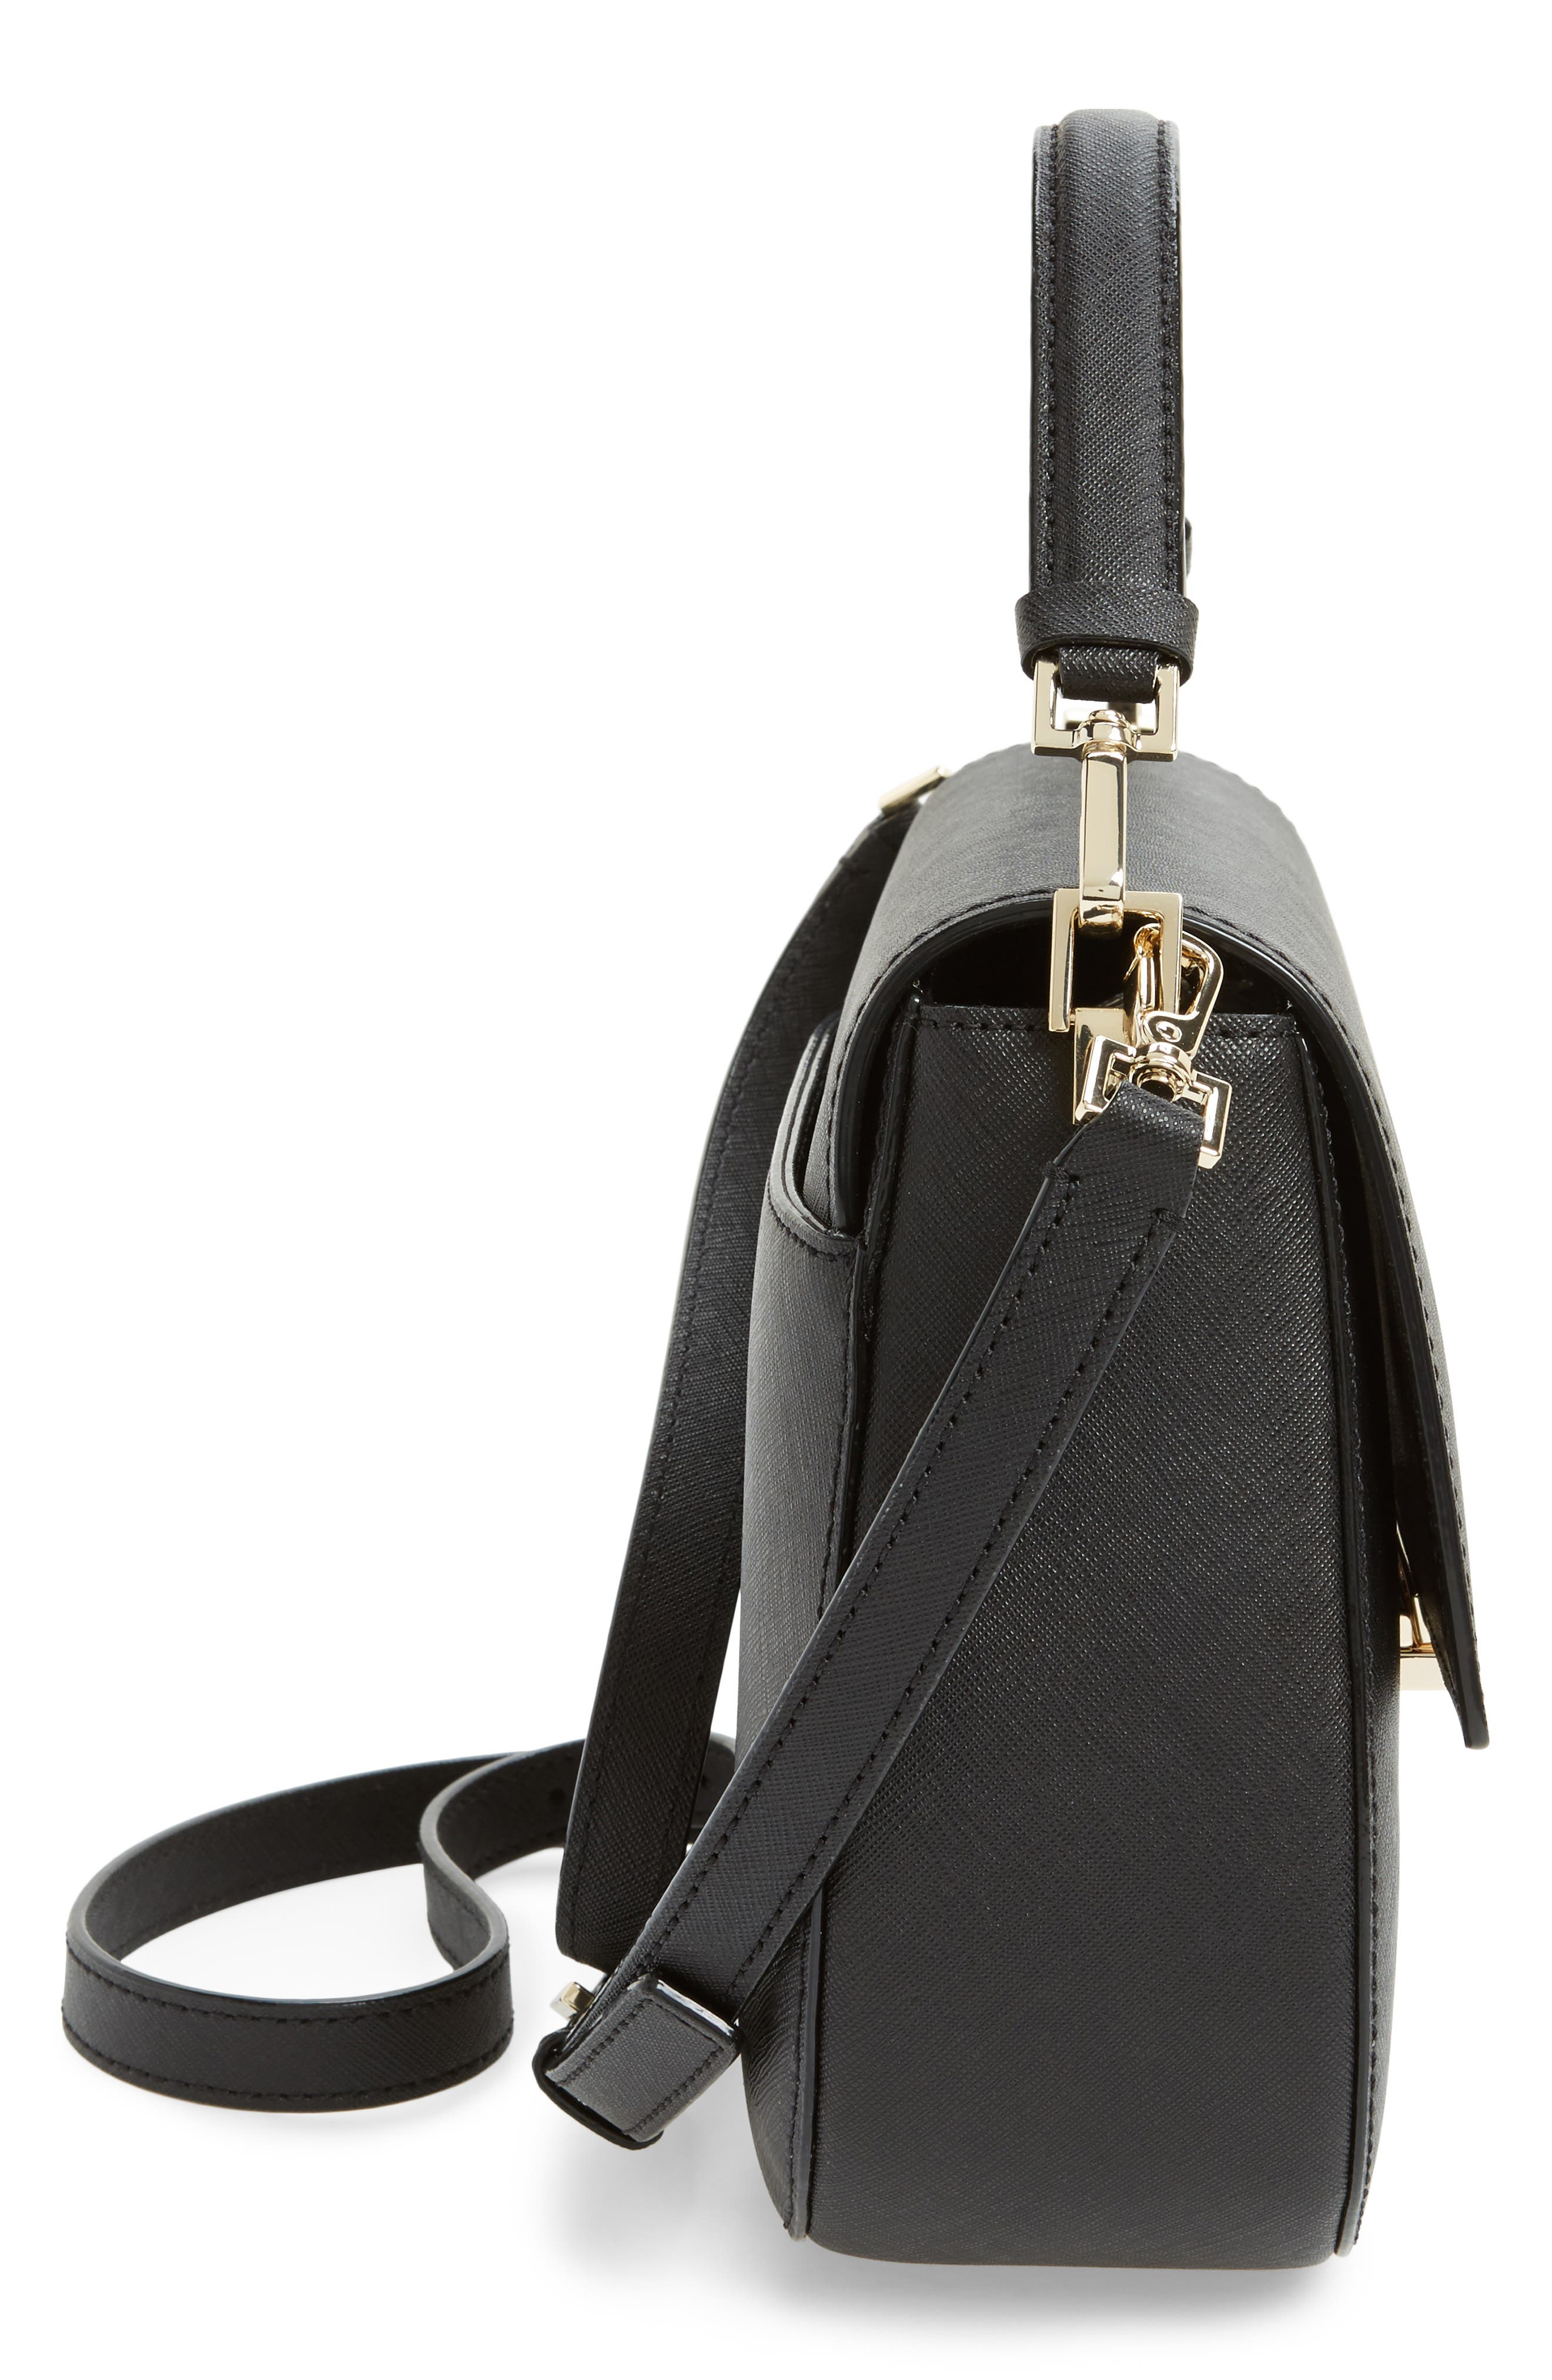 make it mine - byrdie leather saddle bag,                             Alternate thumbnail 5, color,                             001